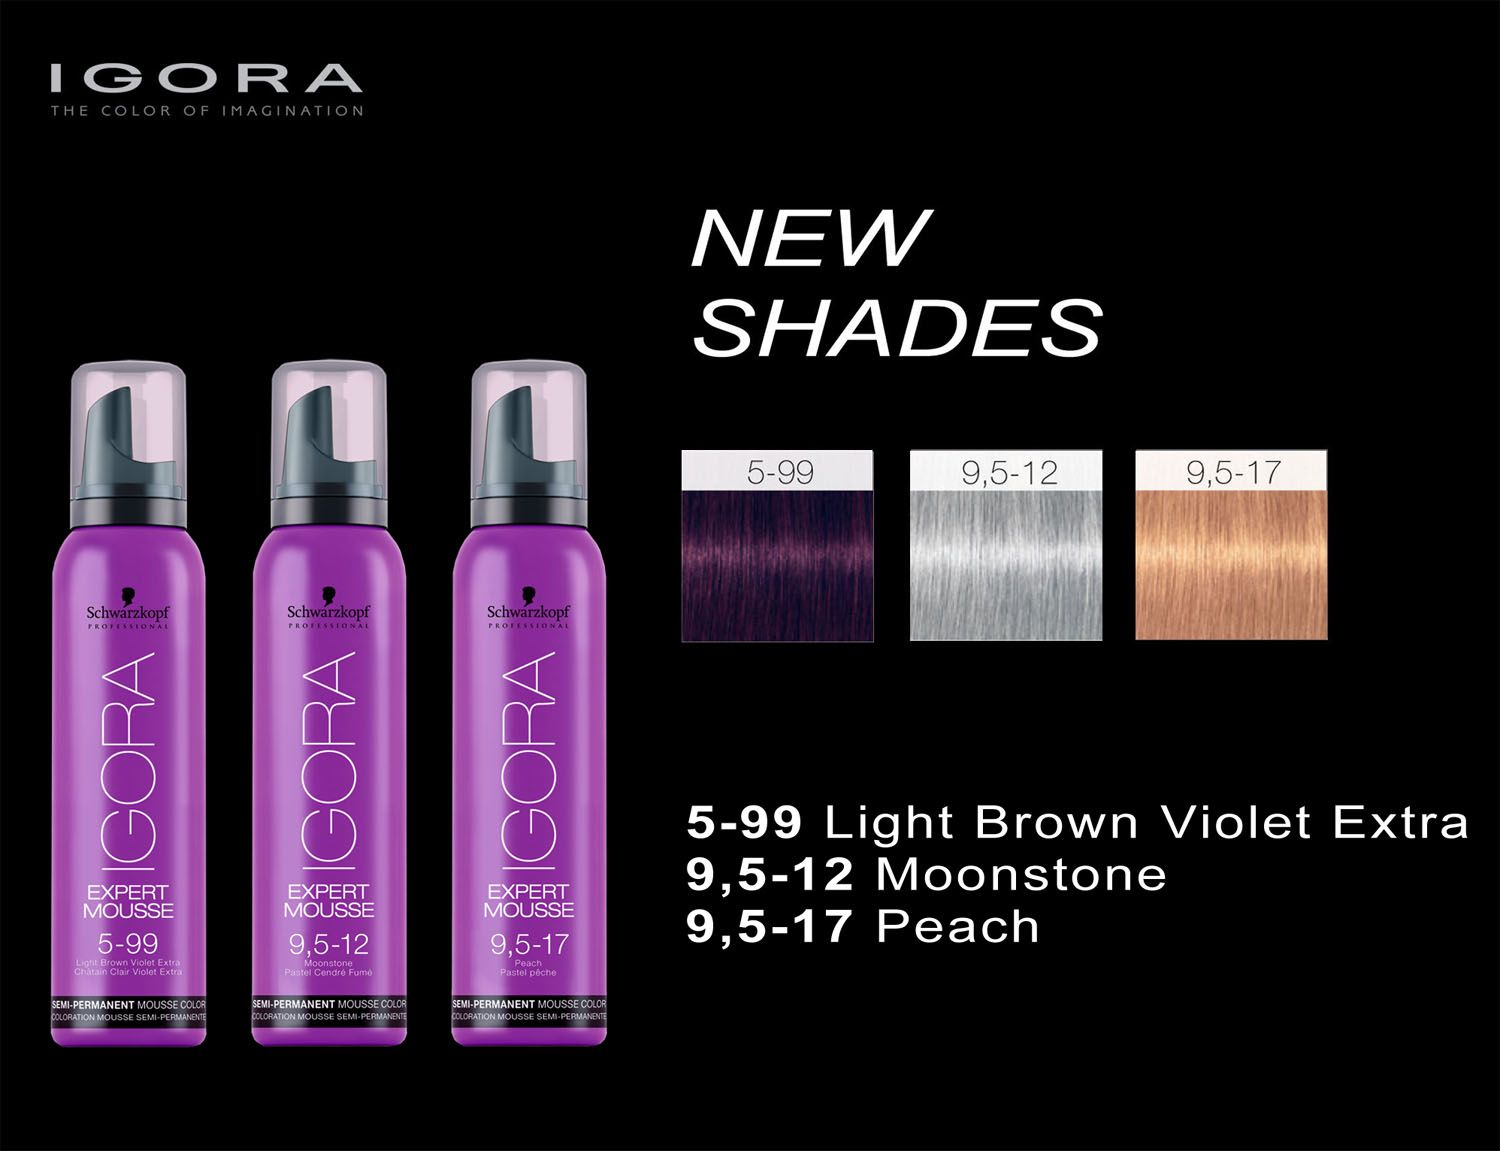 Schwarzkopf professional igora expert mousse new shades schwarzkopf professional igora expert mousse new shades hair color chartsschwarzkopf nvjuhfo Image collections